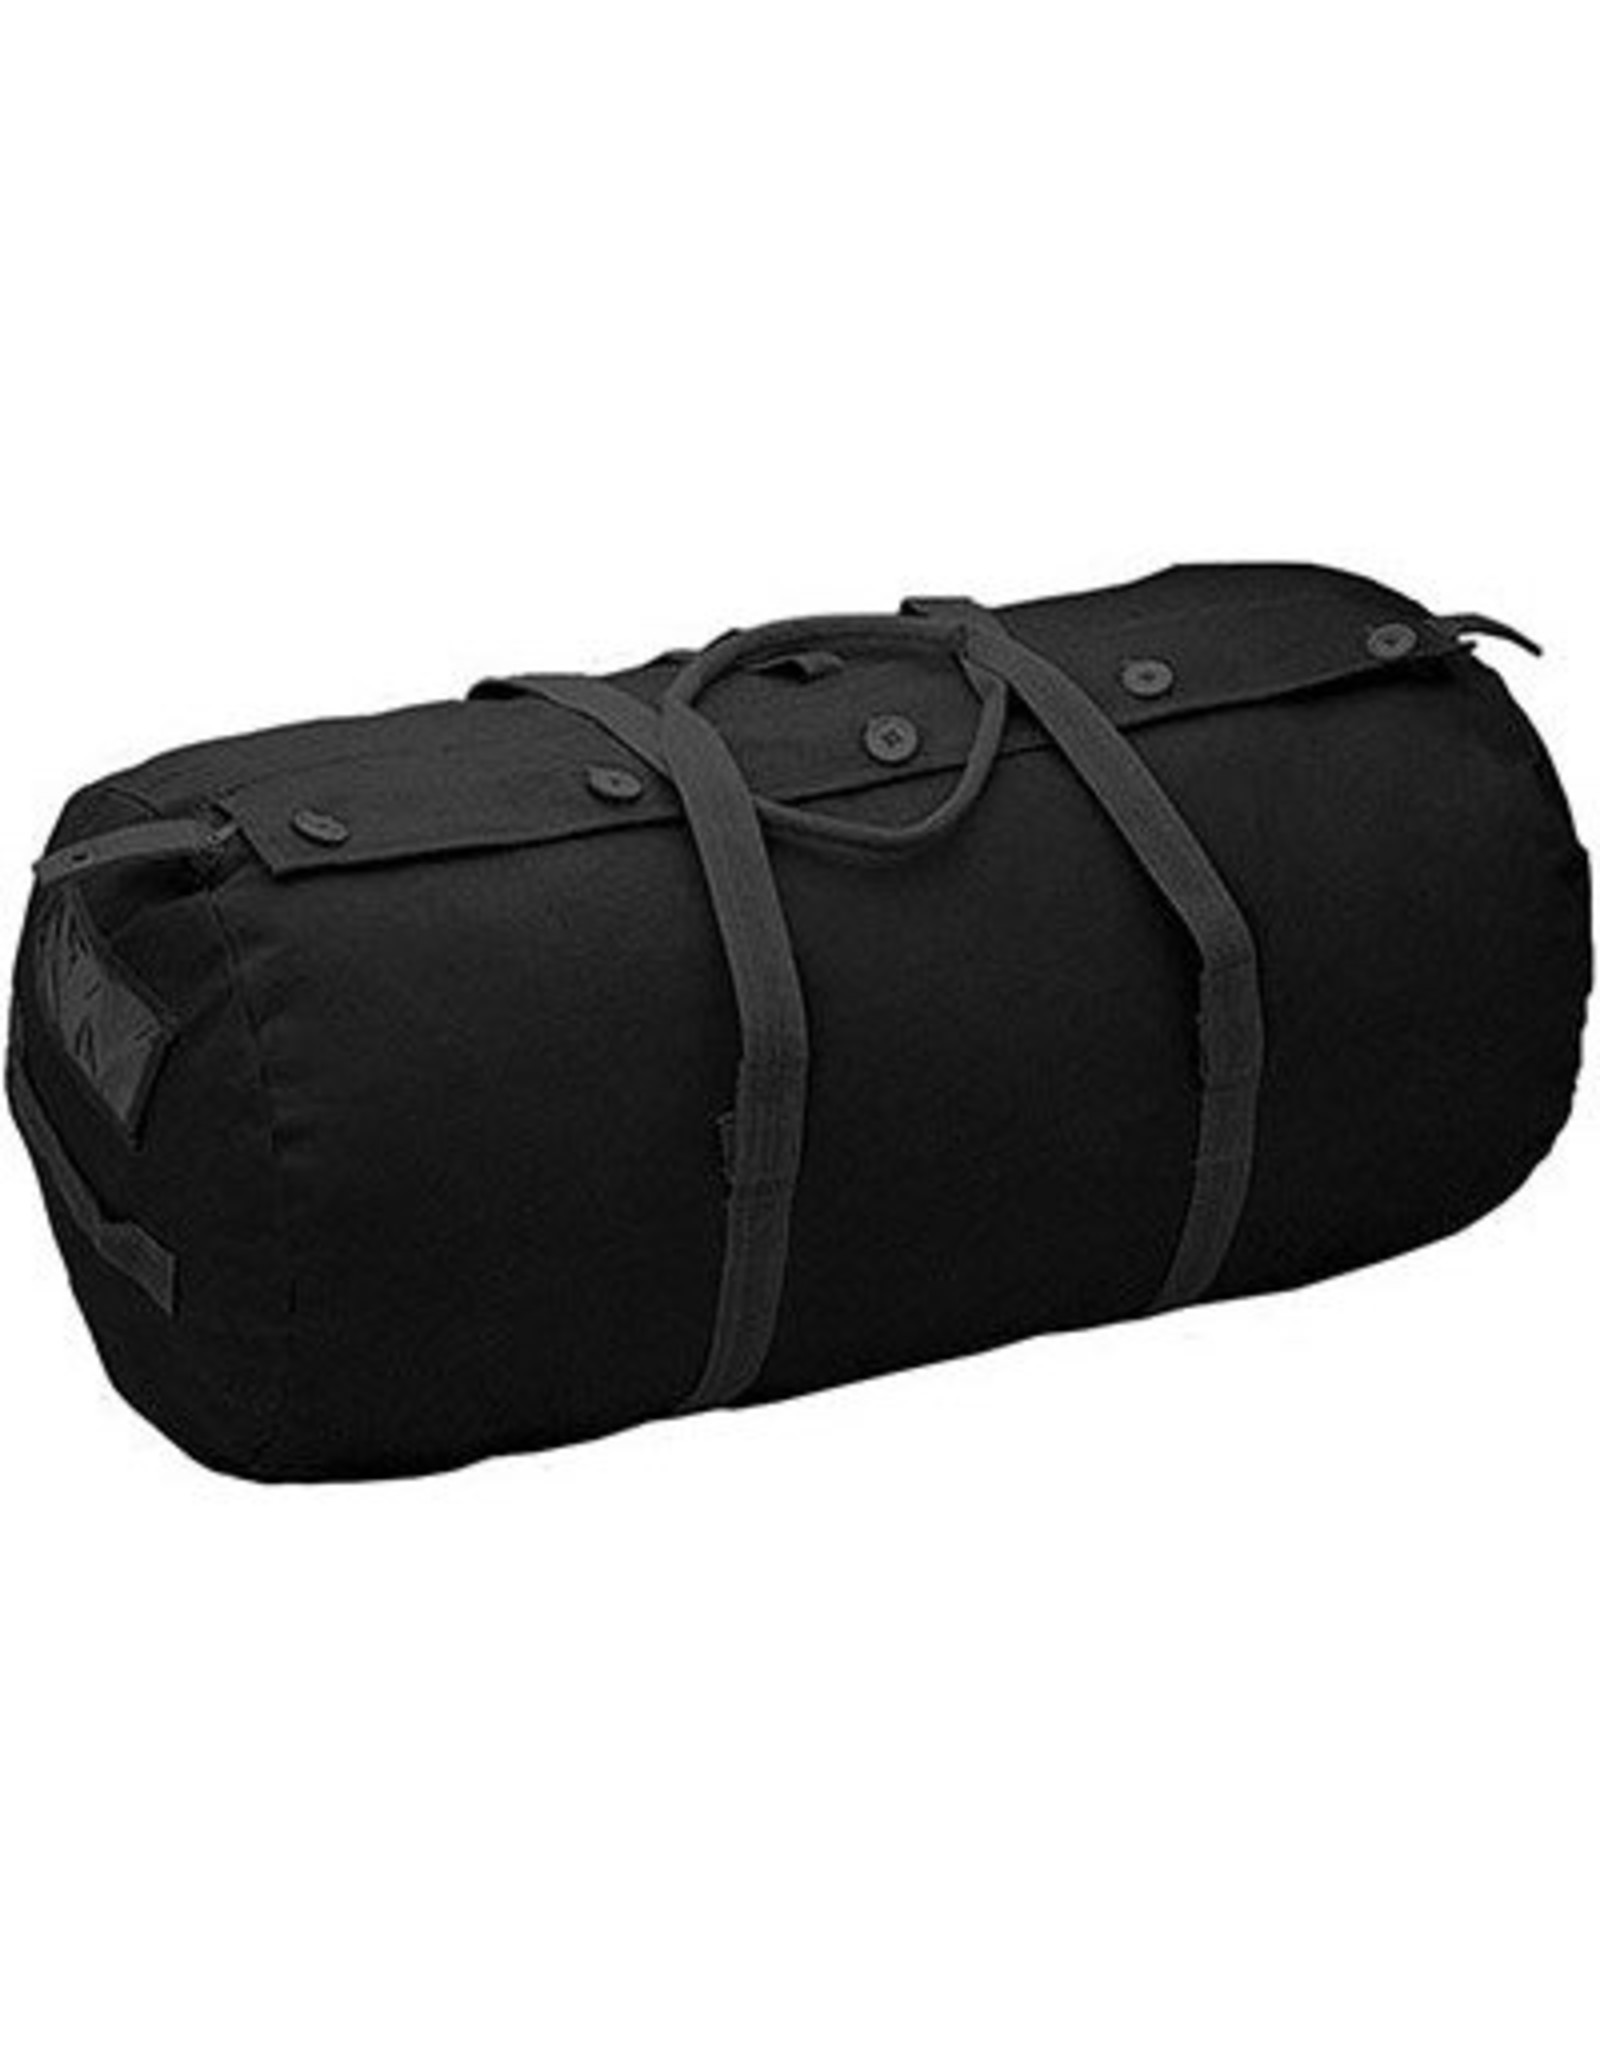 WORLD FAMOUS SALES PARATROOPER CANVAS BAG-BLACK